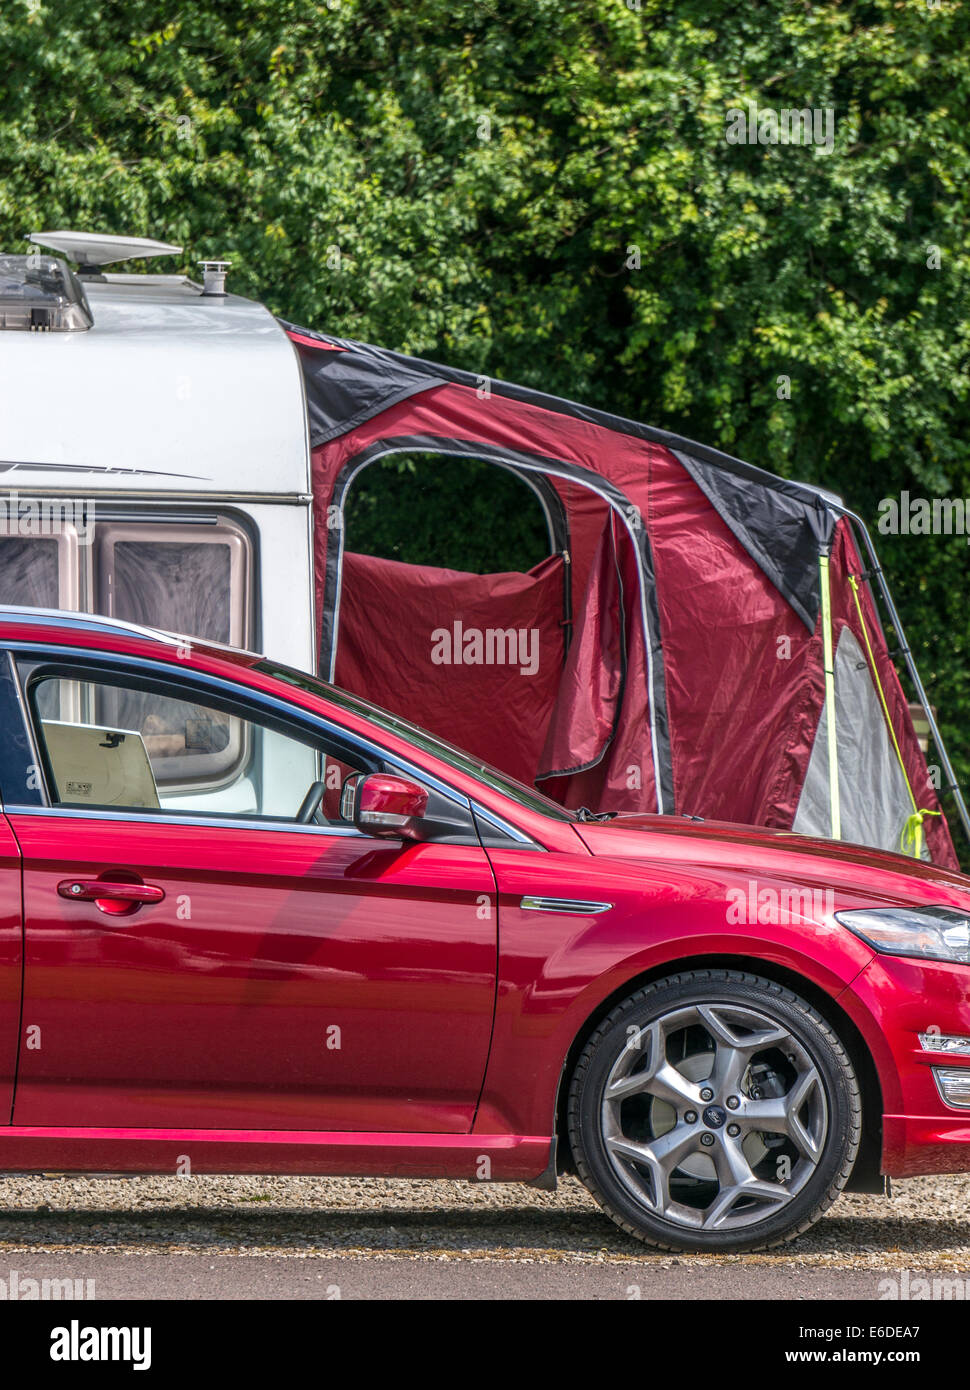 A maroon awning and matching car on a caravan Caravan Club campsite pitch in England, UK. - Stock Image